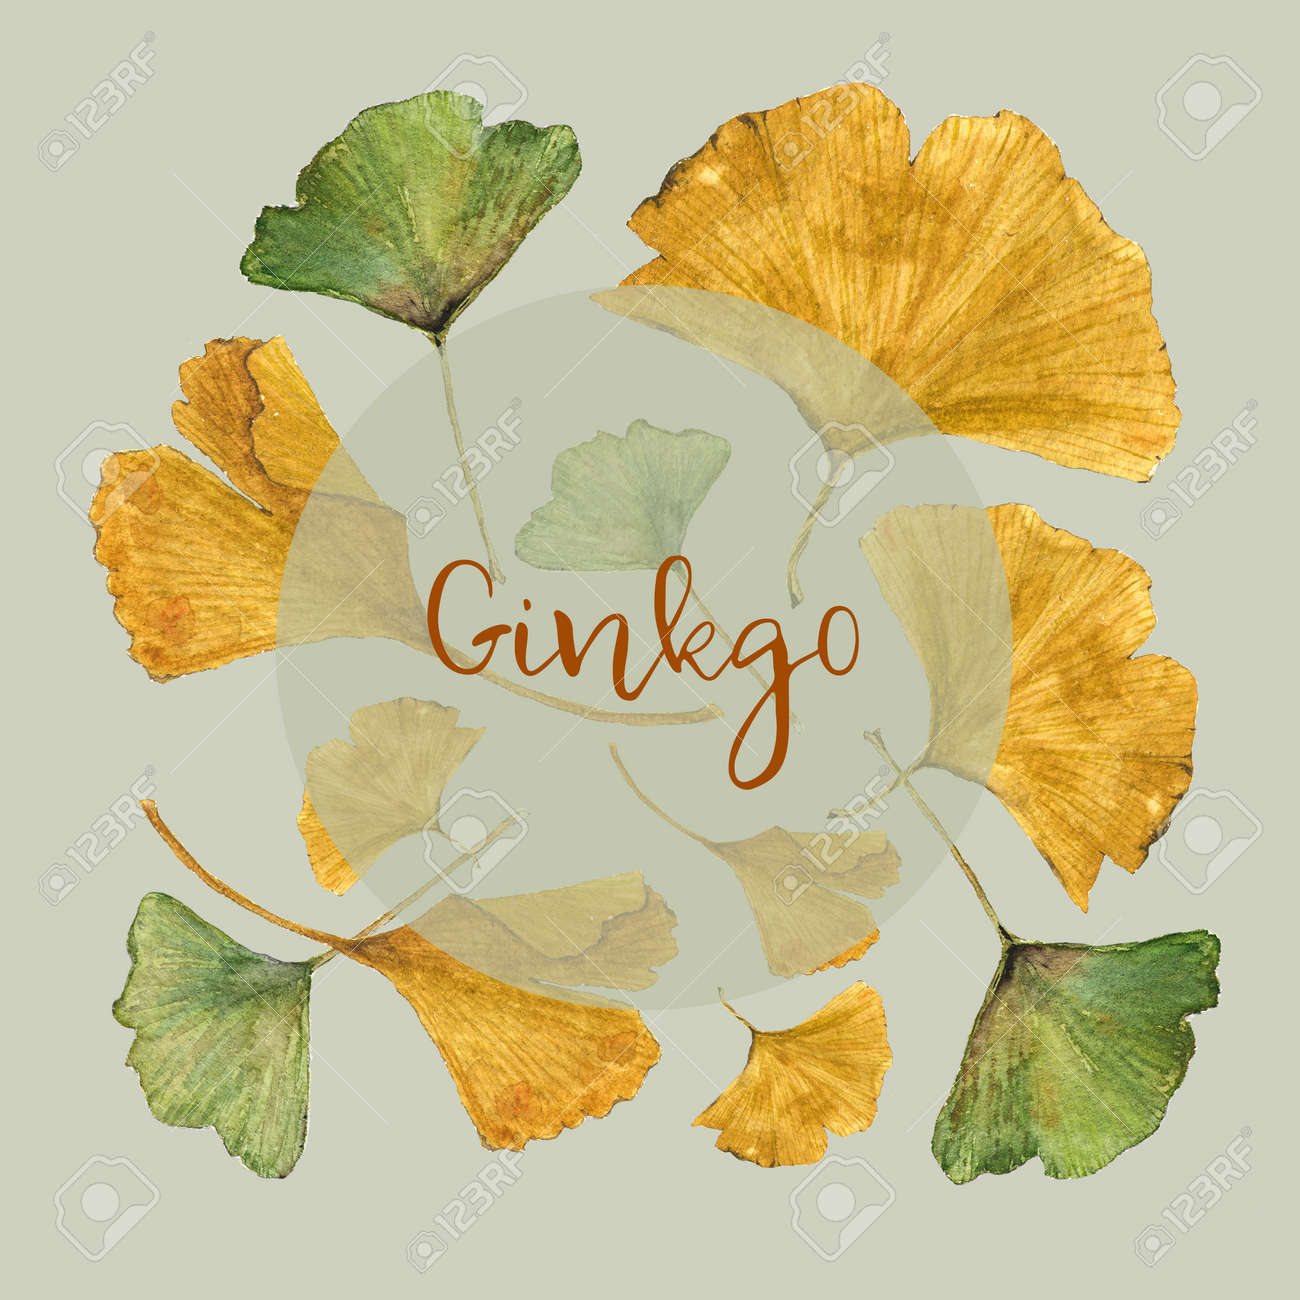 botanical watercolor illustration of colorful ginkgo leaves on